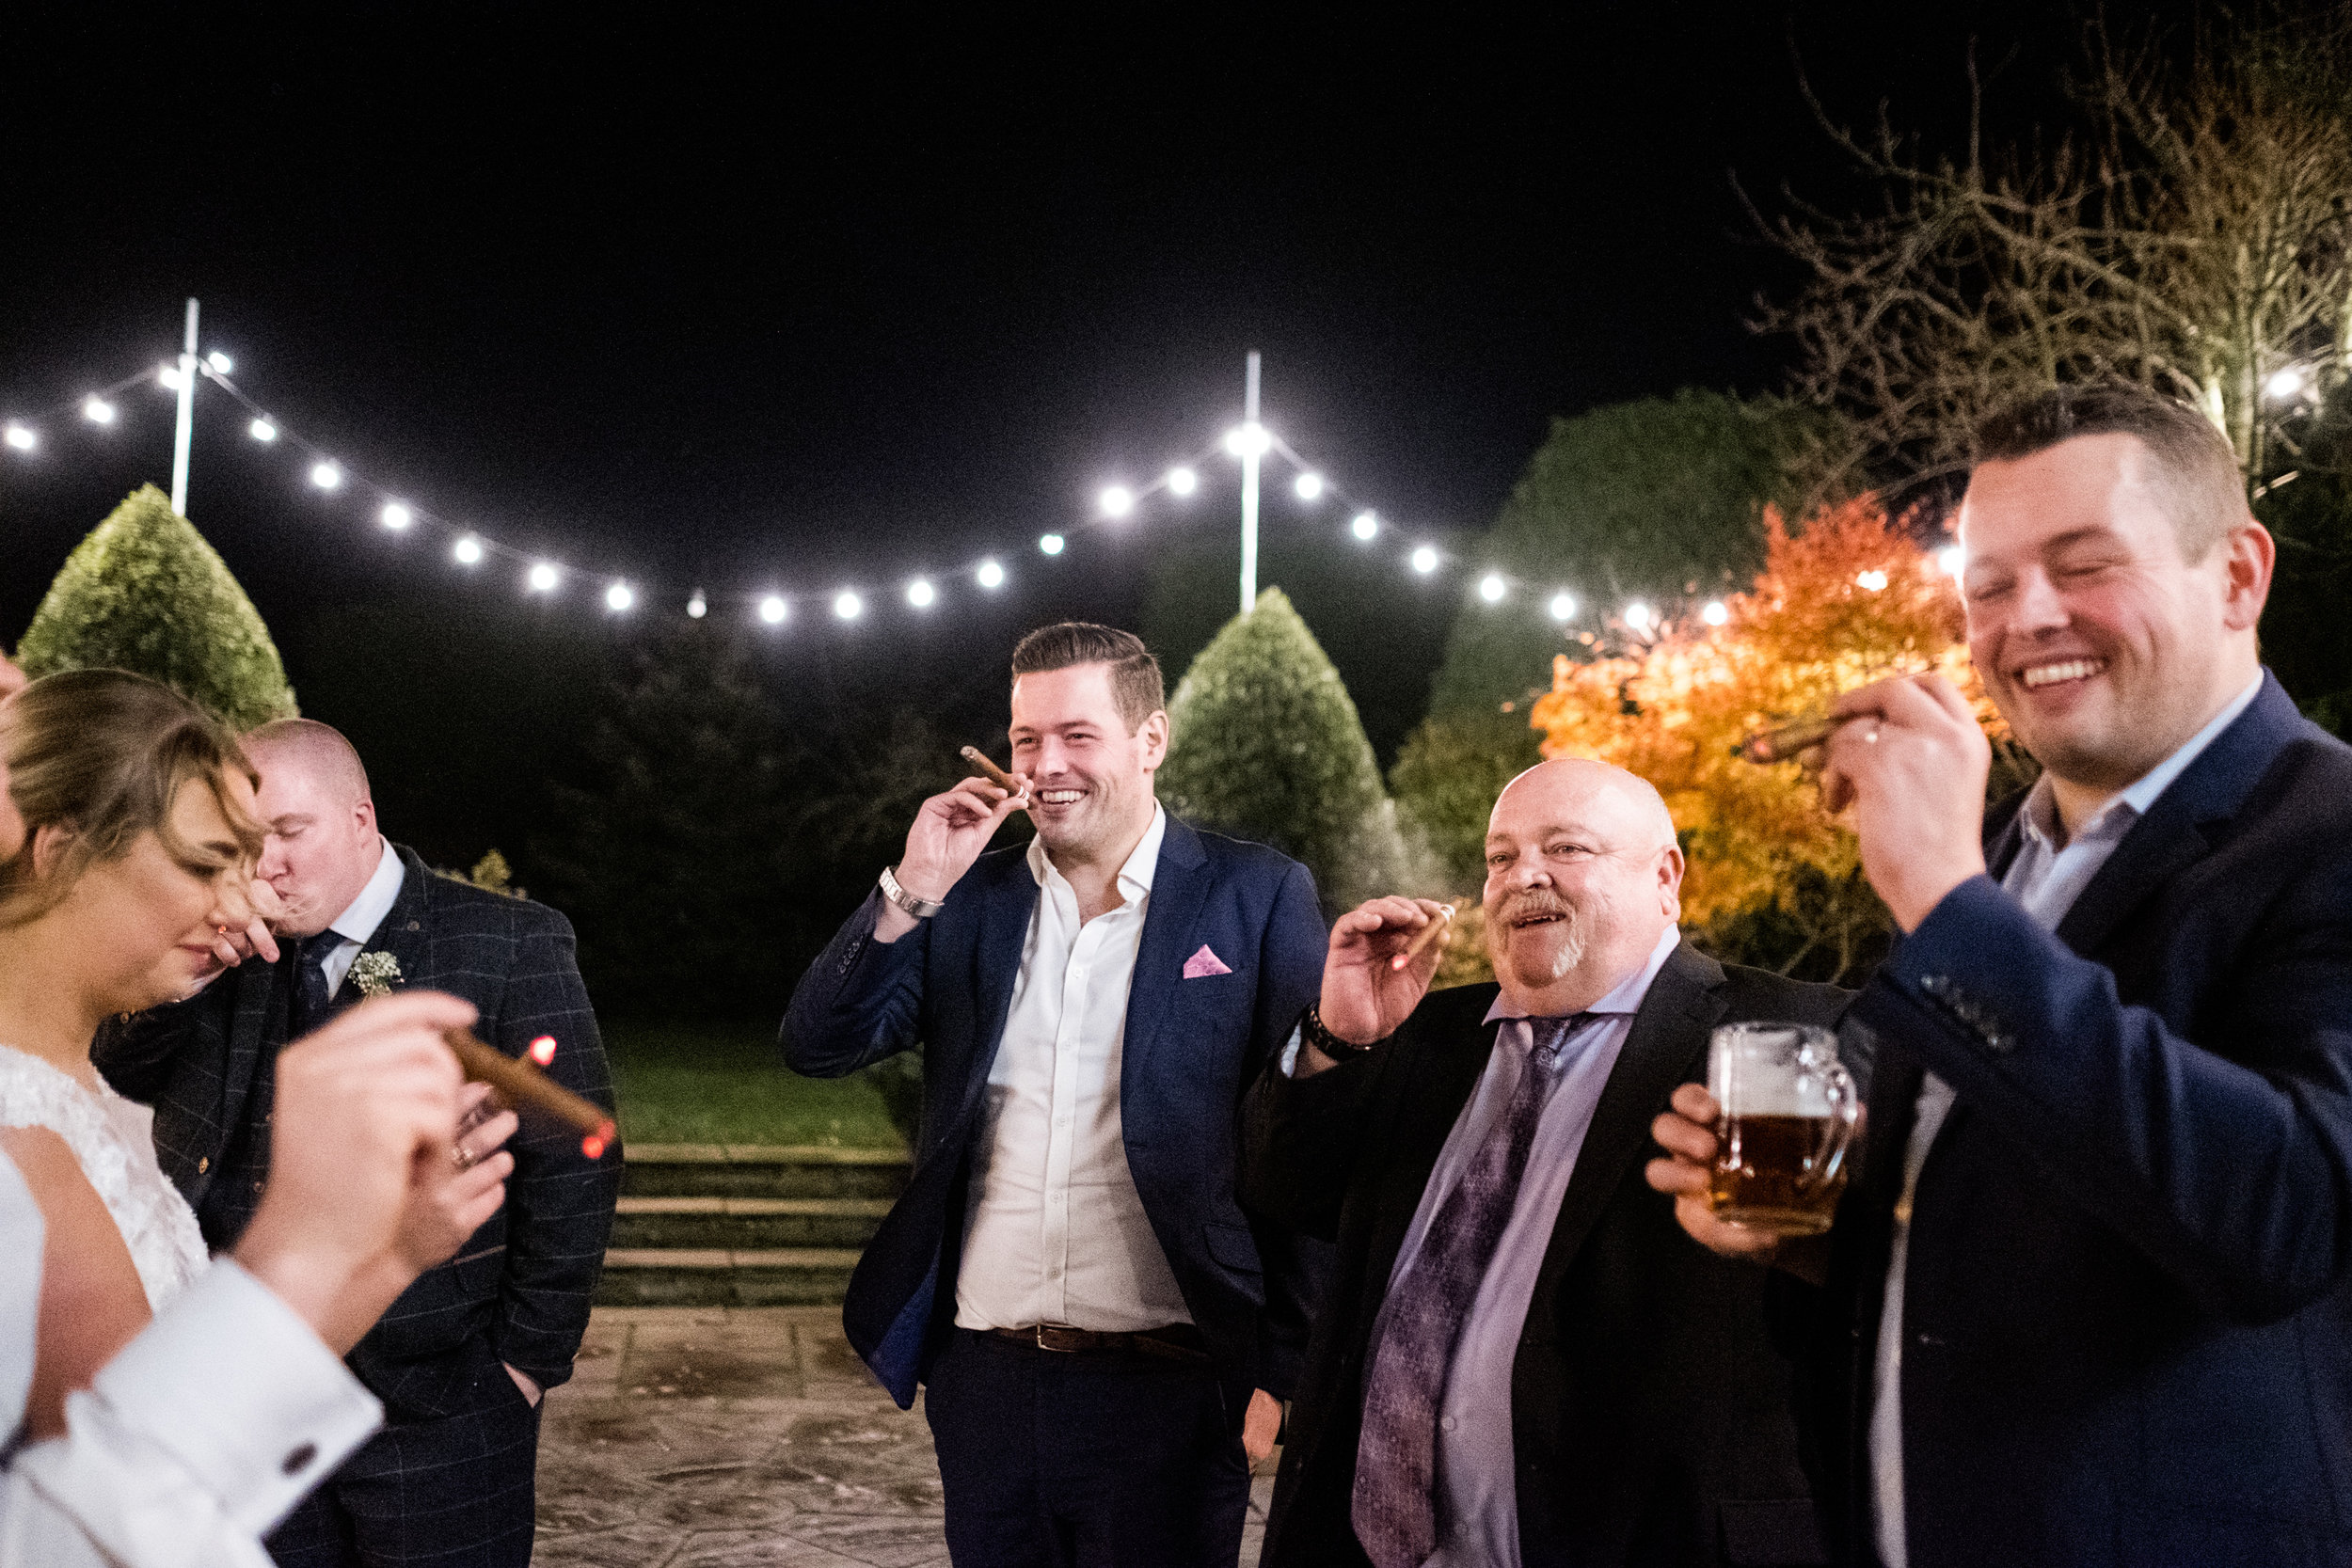 Autumn Wedding Photography at The Three Horseshoes, Blackshaw Moor, Staffordshire Moorlands - Jenny Harper-71.jpg